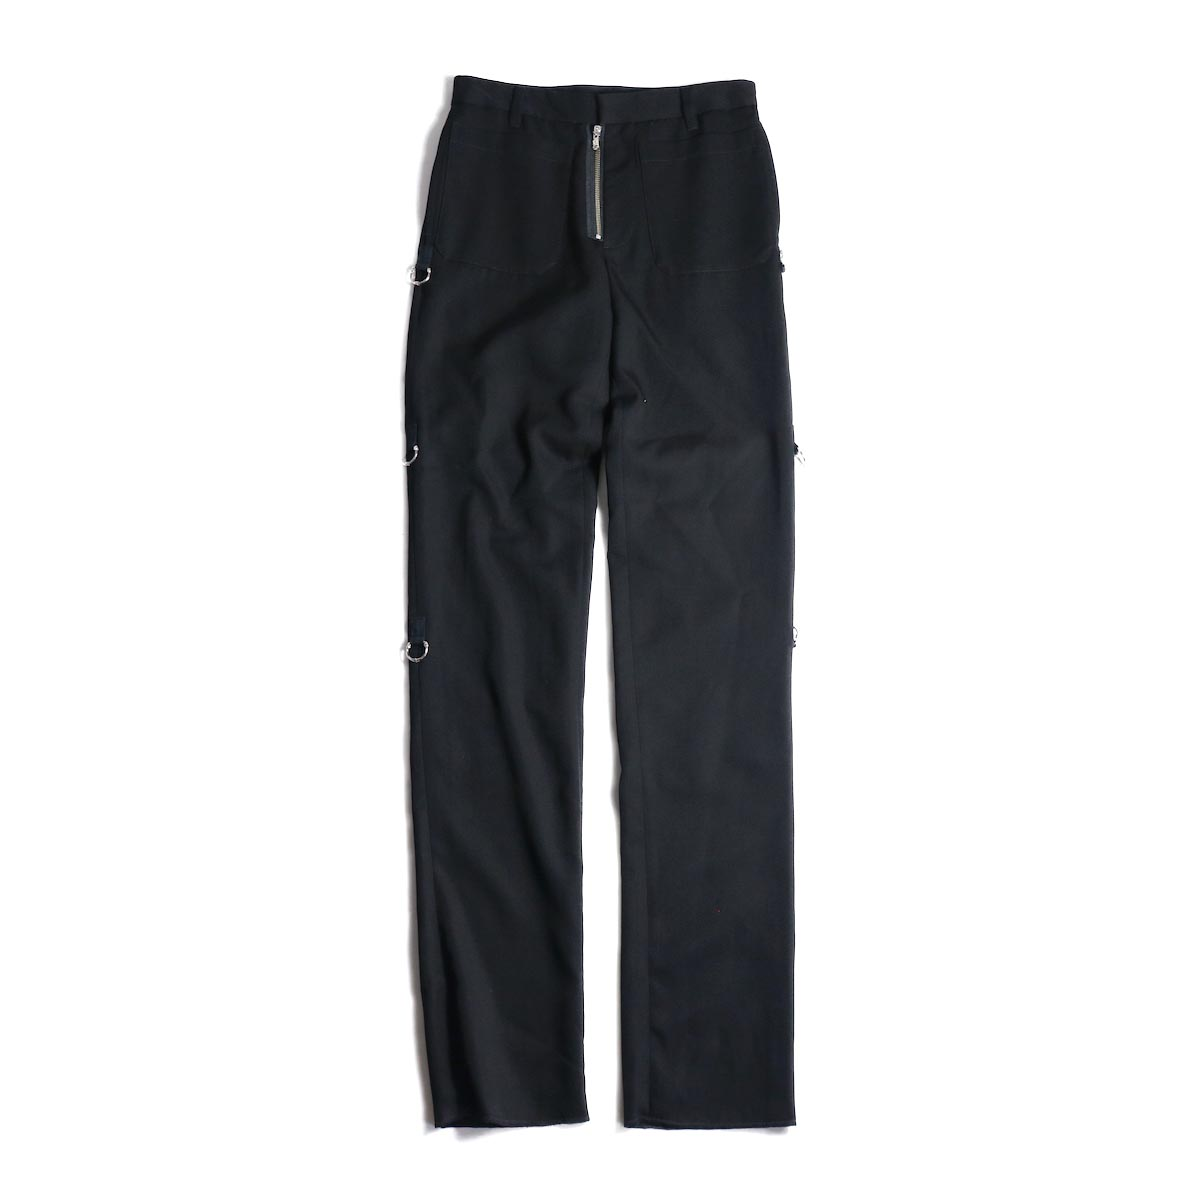 The Soloist / sp.0007bAW20 patch pocket pant.